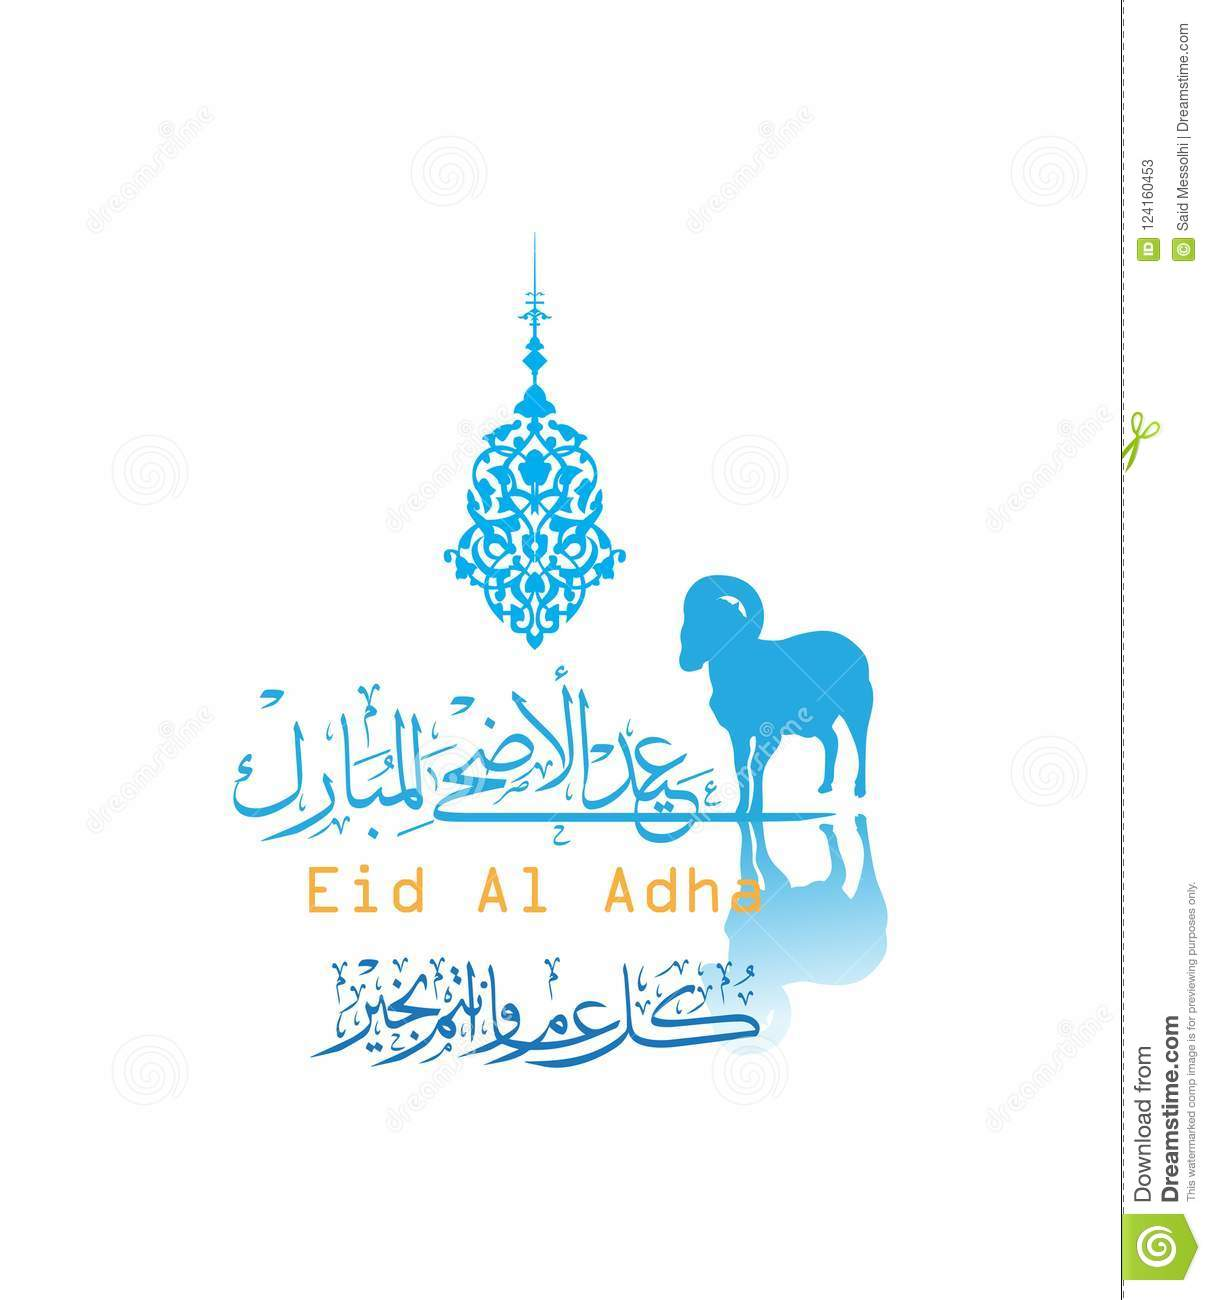 Eid mubarak in arabic calligraphy eid means celebration and eid mubarak in arabic calligraphy eid means celebration and mubarak means blessed is a muslim greeting reserved for use on the festivals of eid m4hsunfo